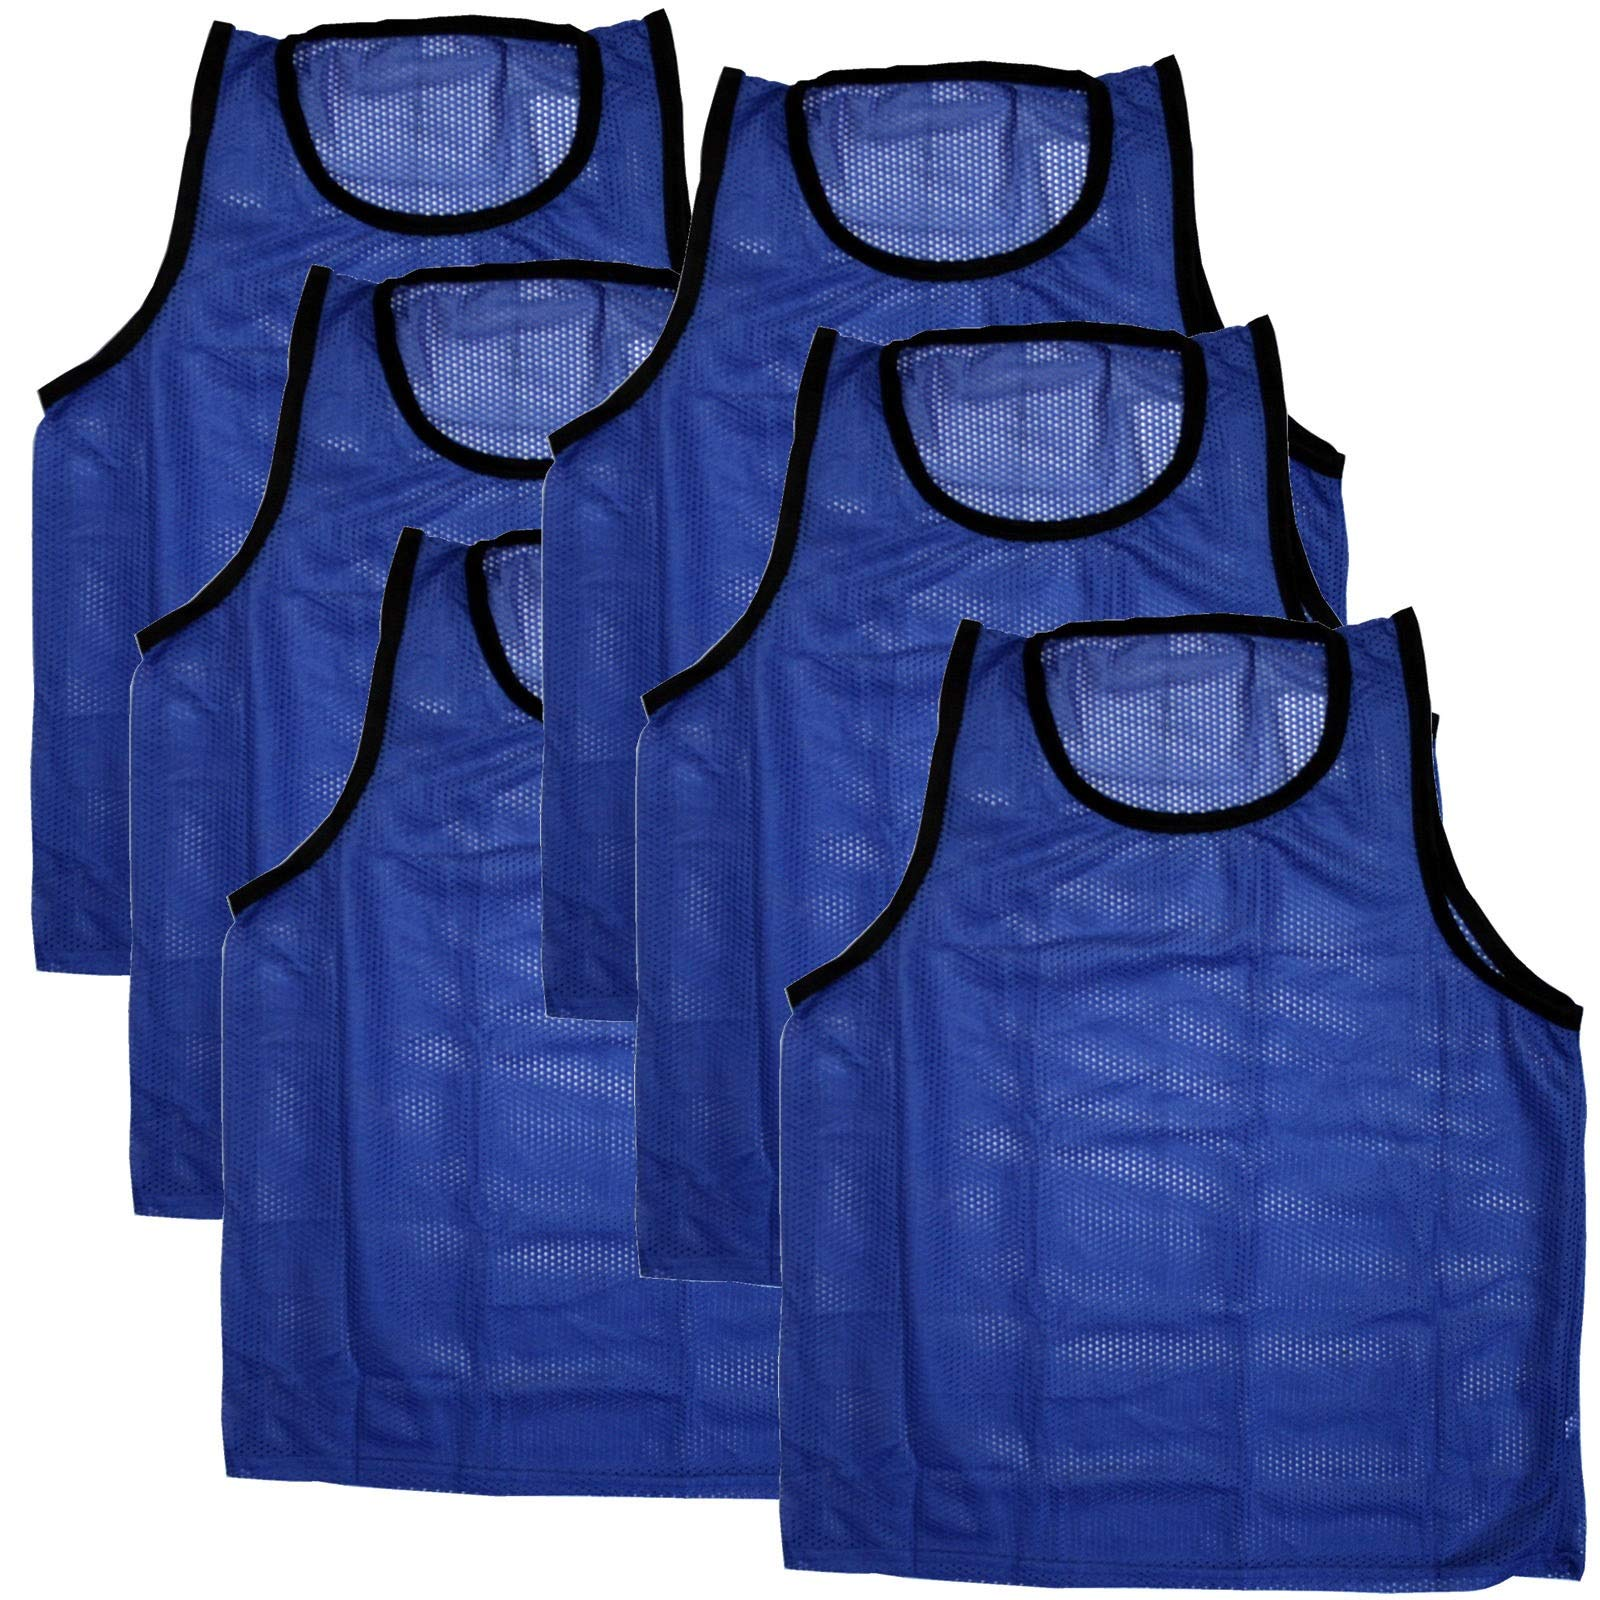 Bright Sun 6 pcs Scrimmage Vests Pinnies Soccer Youth Blue #BDMN